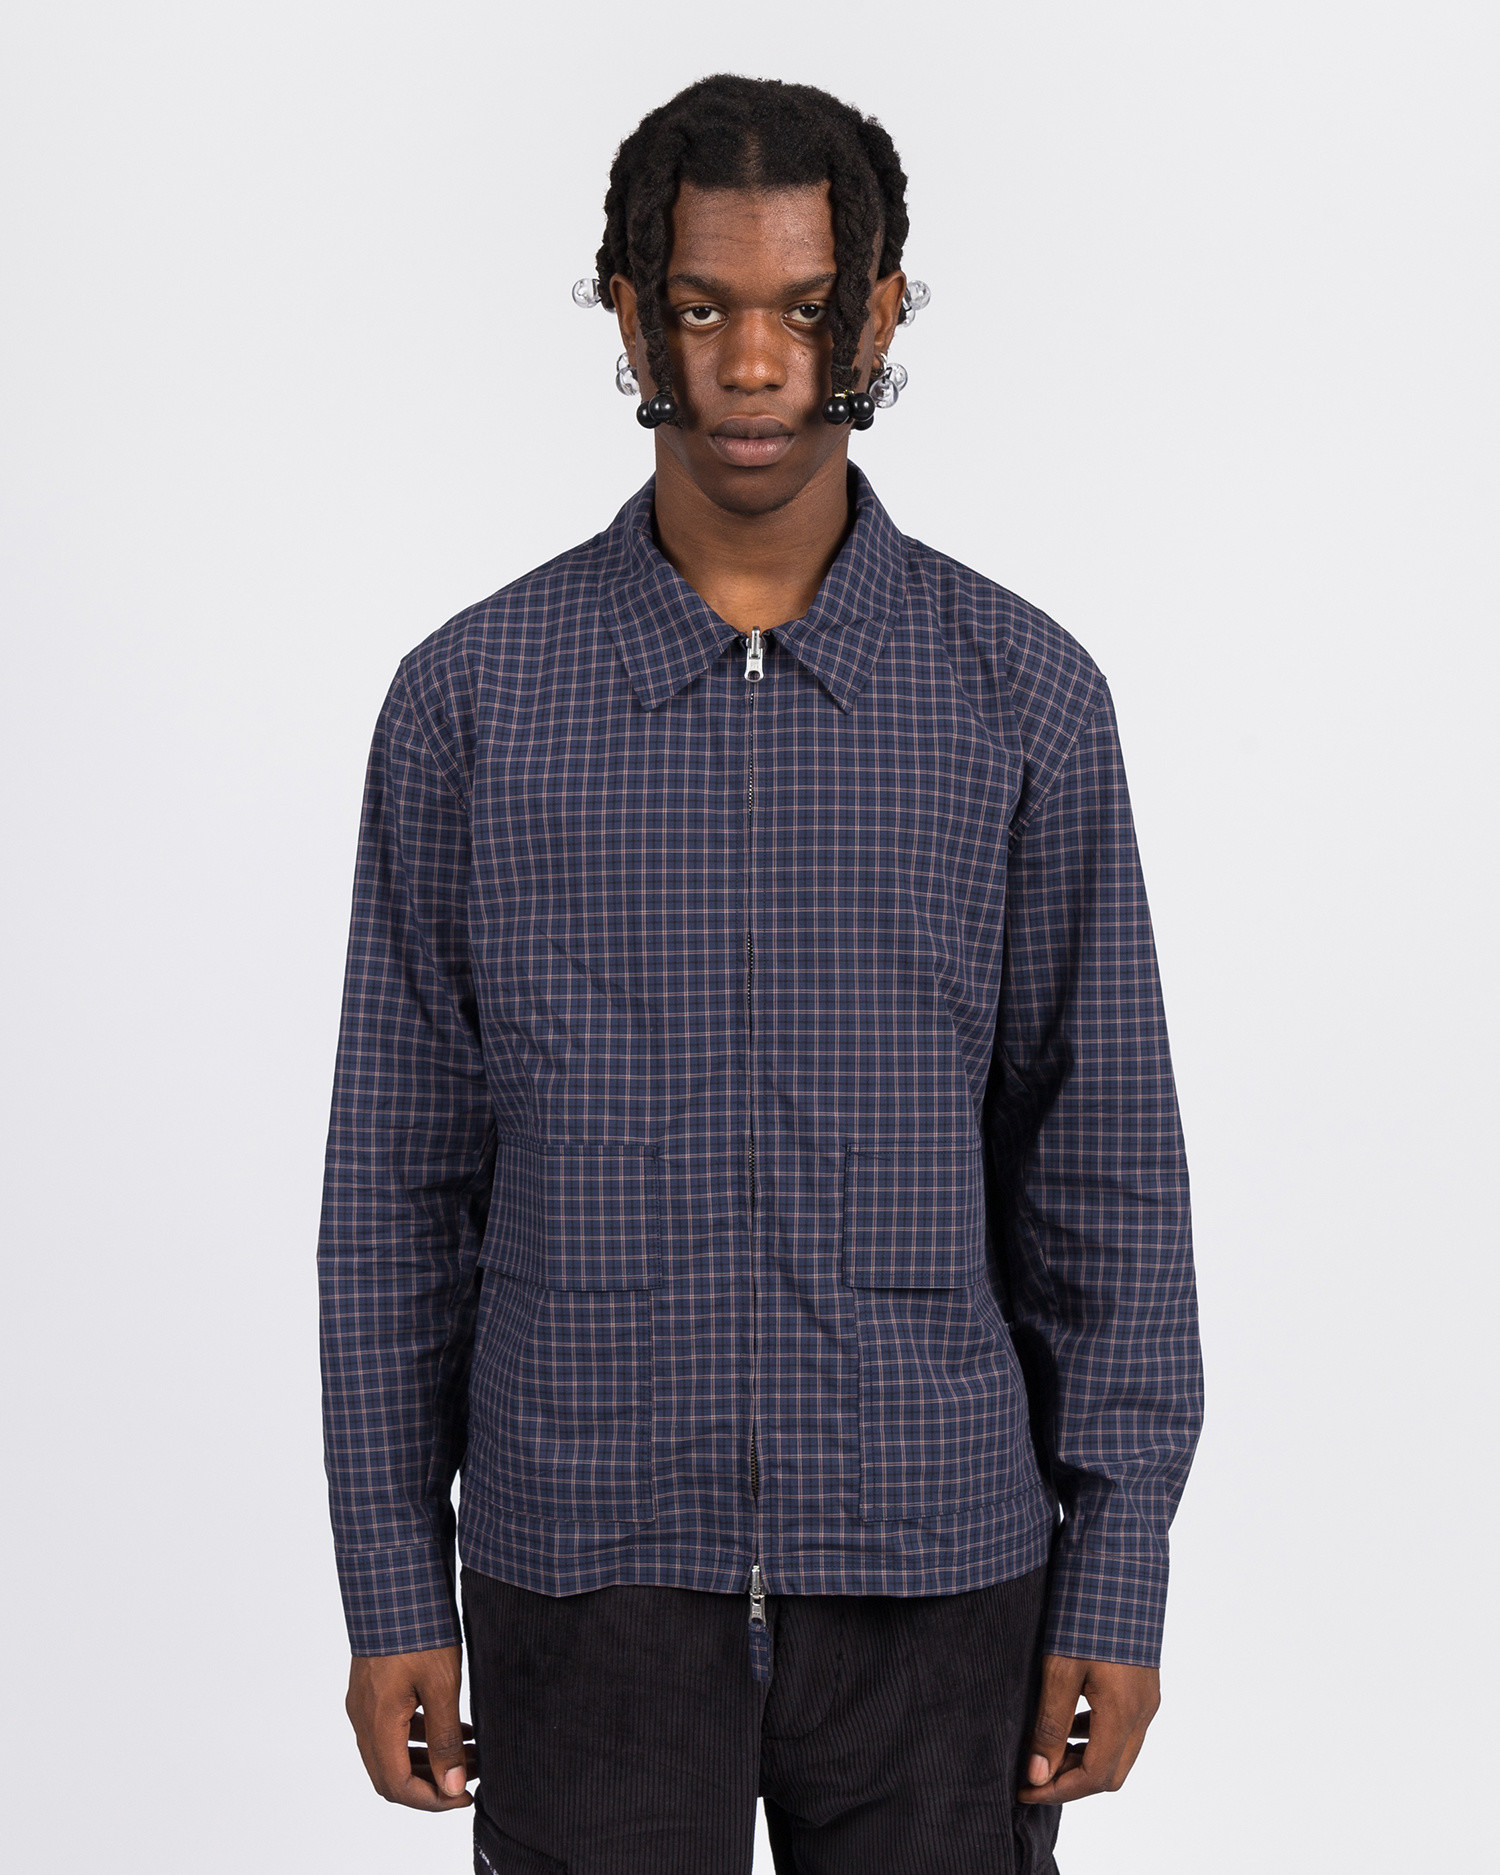 Pop Trading Co full-zip jacket check